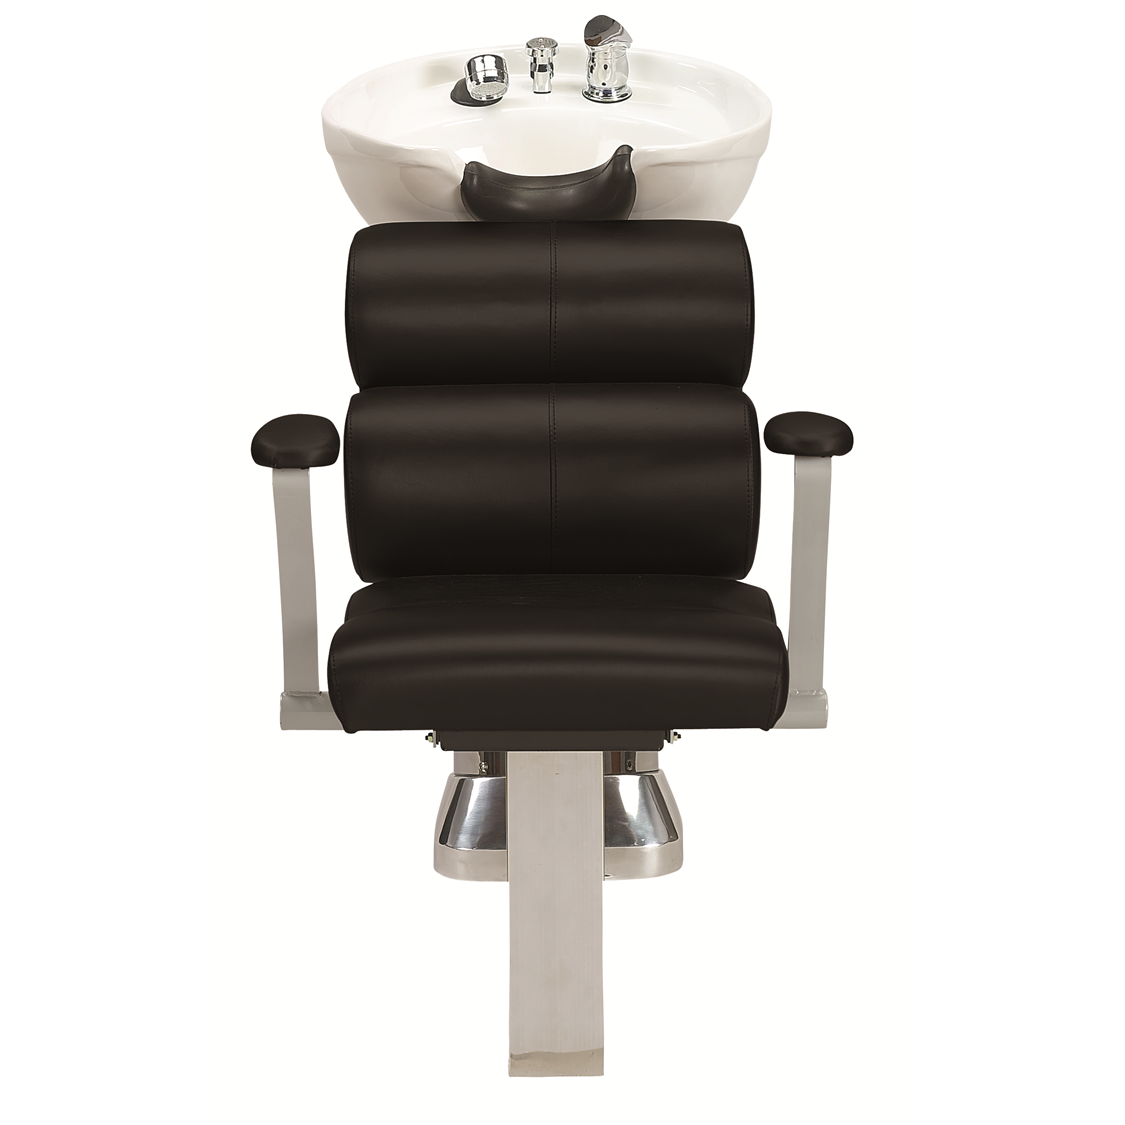 50B Shampoo System, White-Black - Garfield Commercial Enterprises Salon Equipment Spa Furniture Barber Chair Luxury